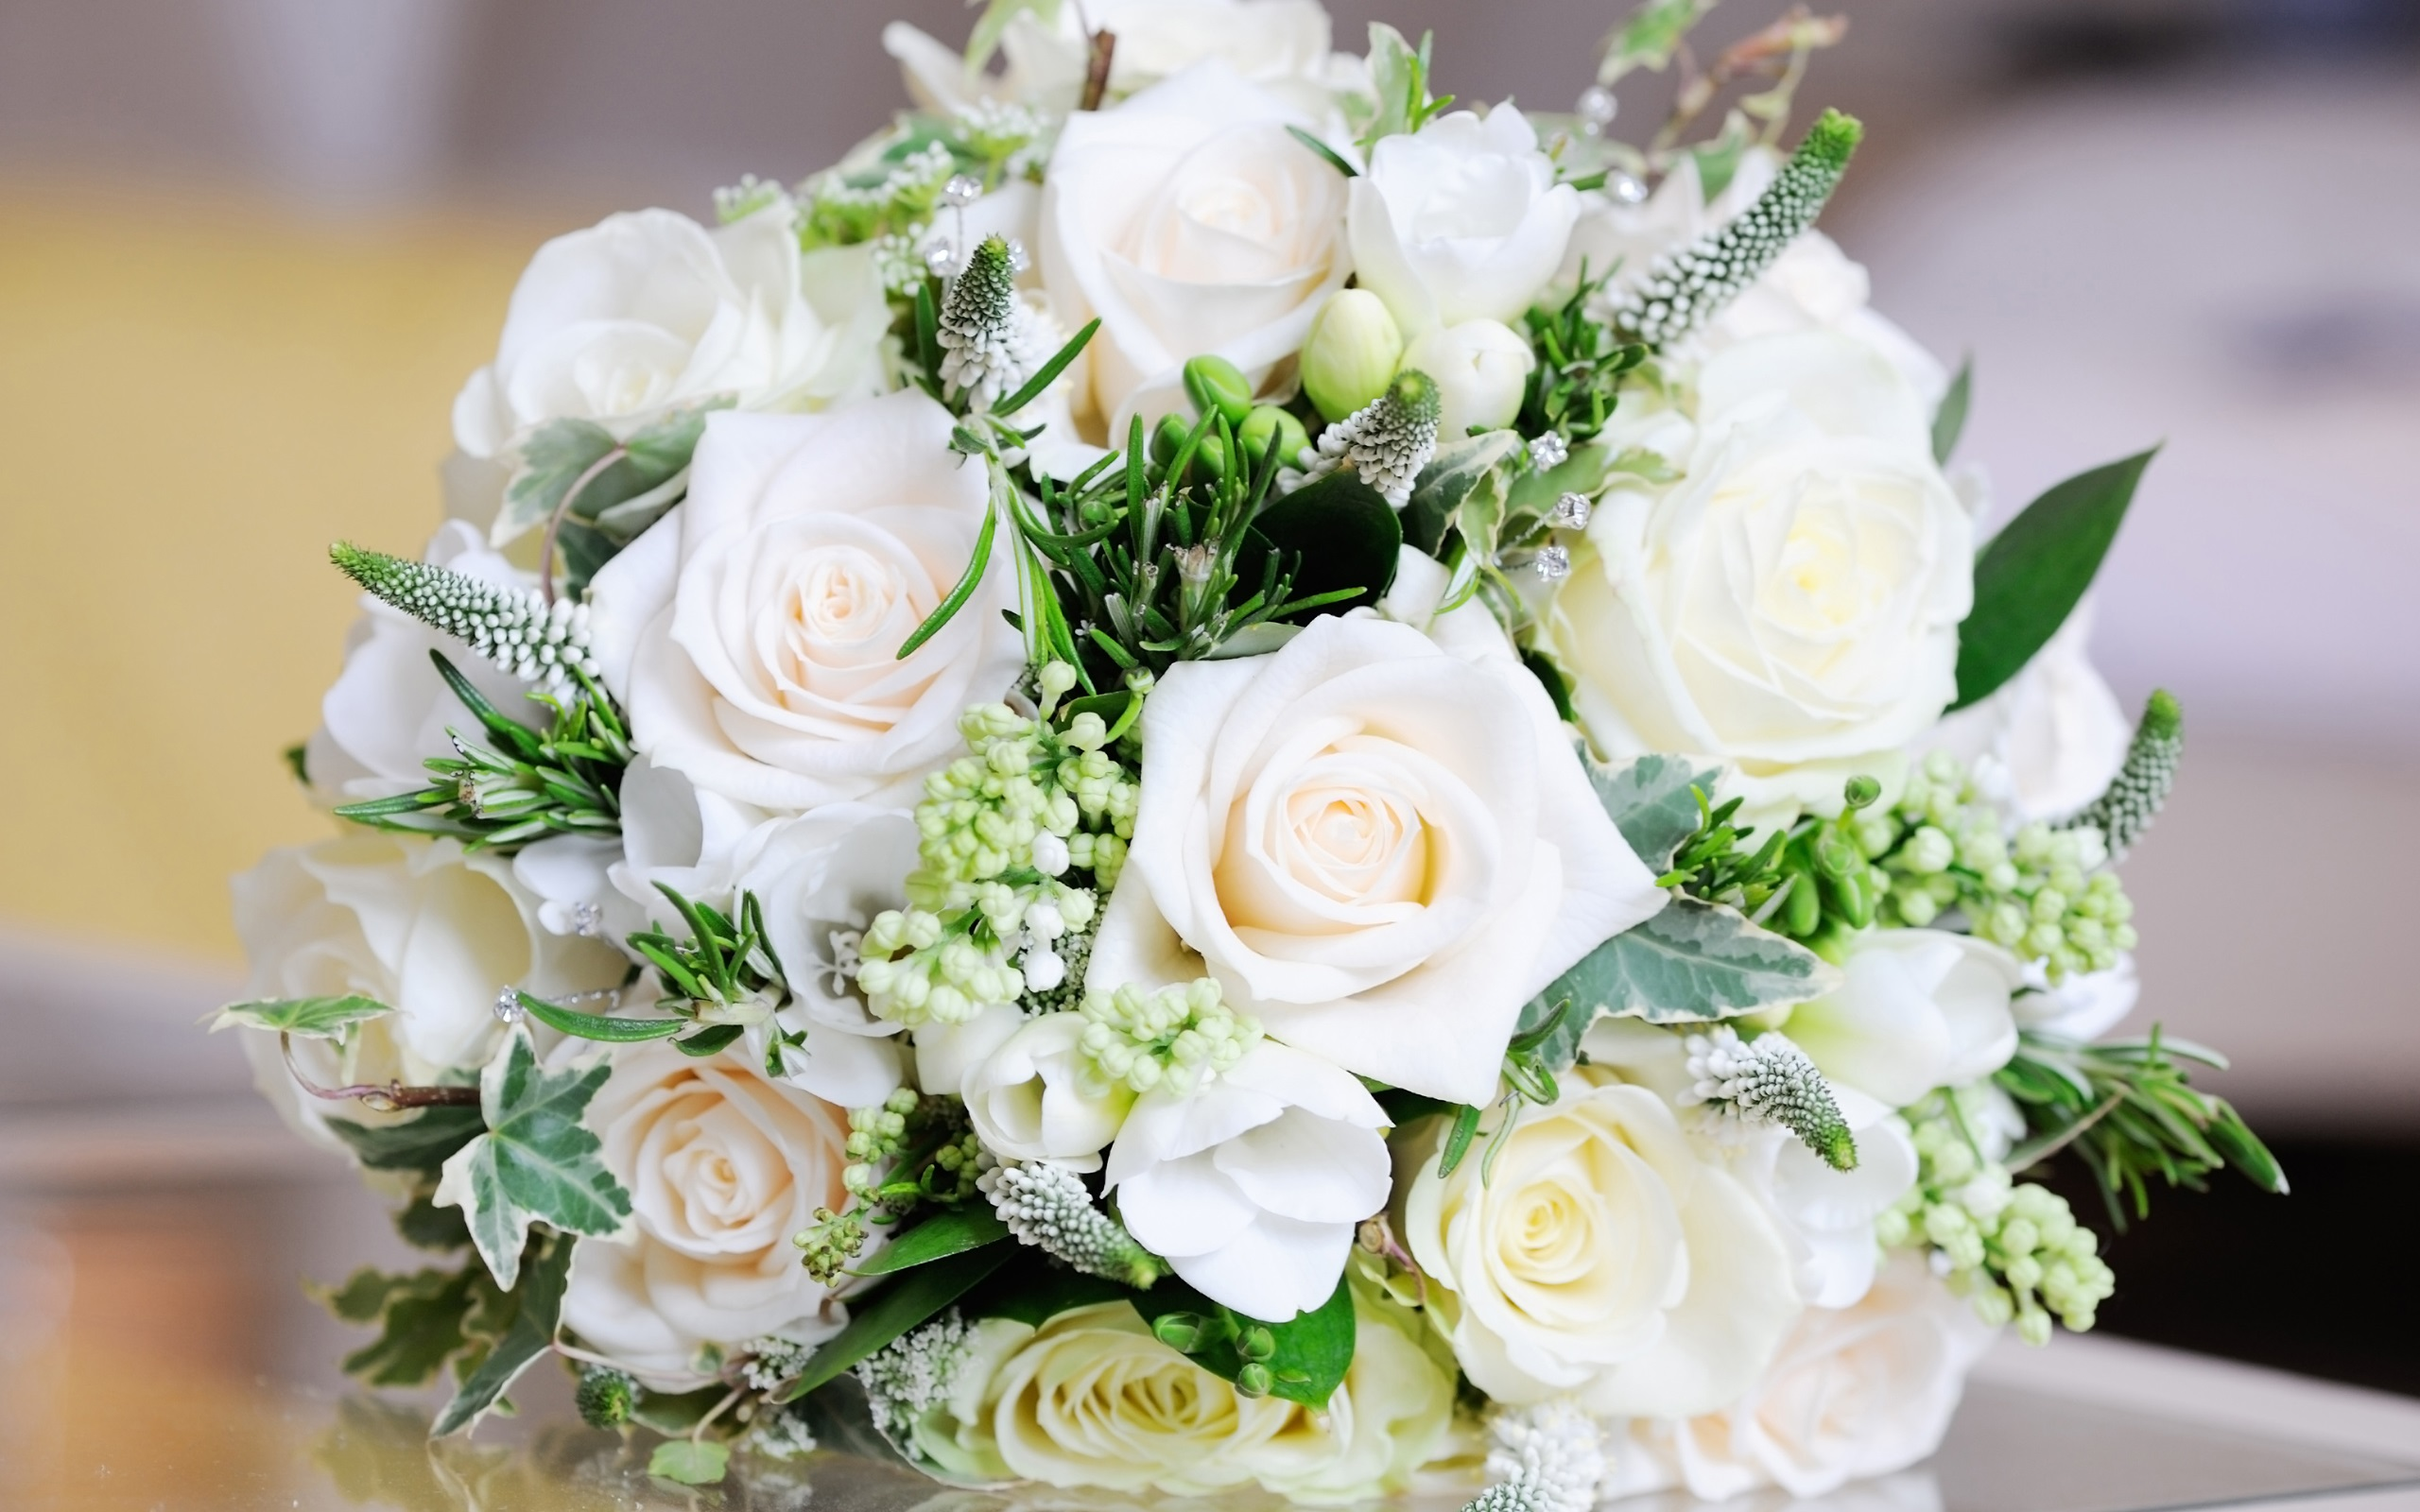 Wallpaper White Bouquet Rose Flowers Leaves 2560x1600 Hd Picture